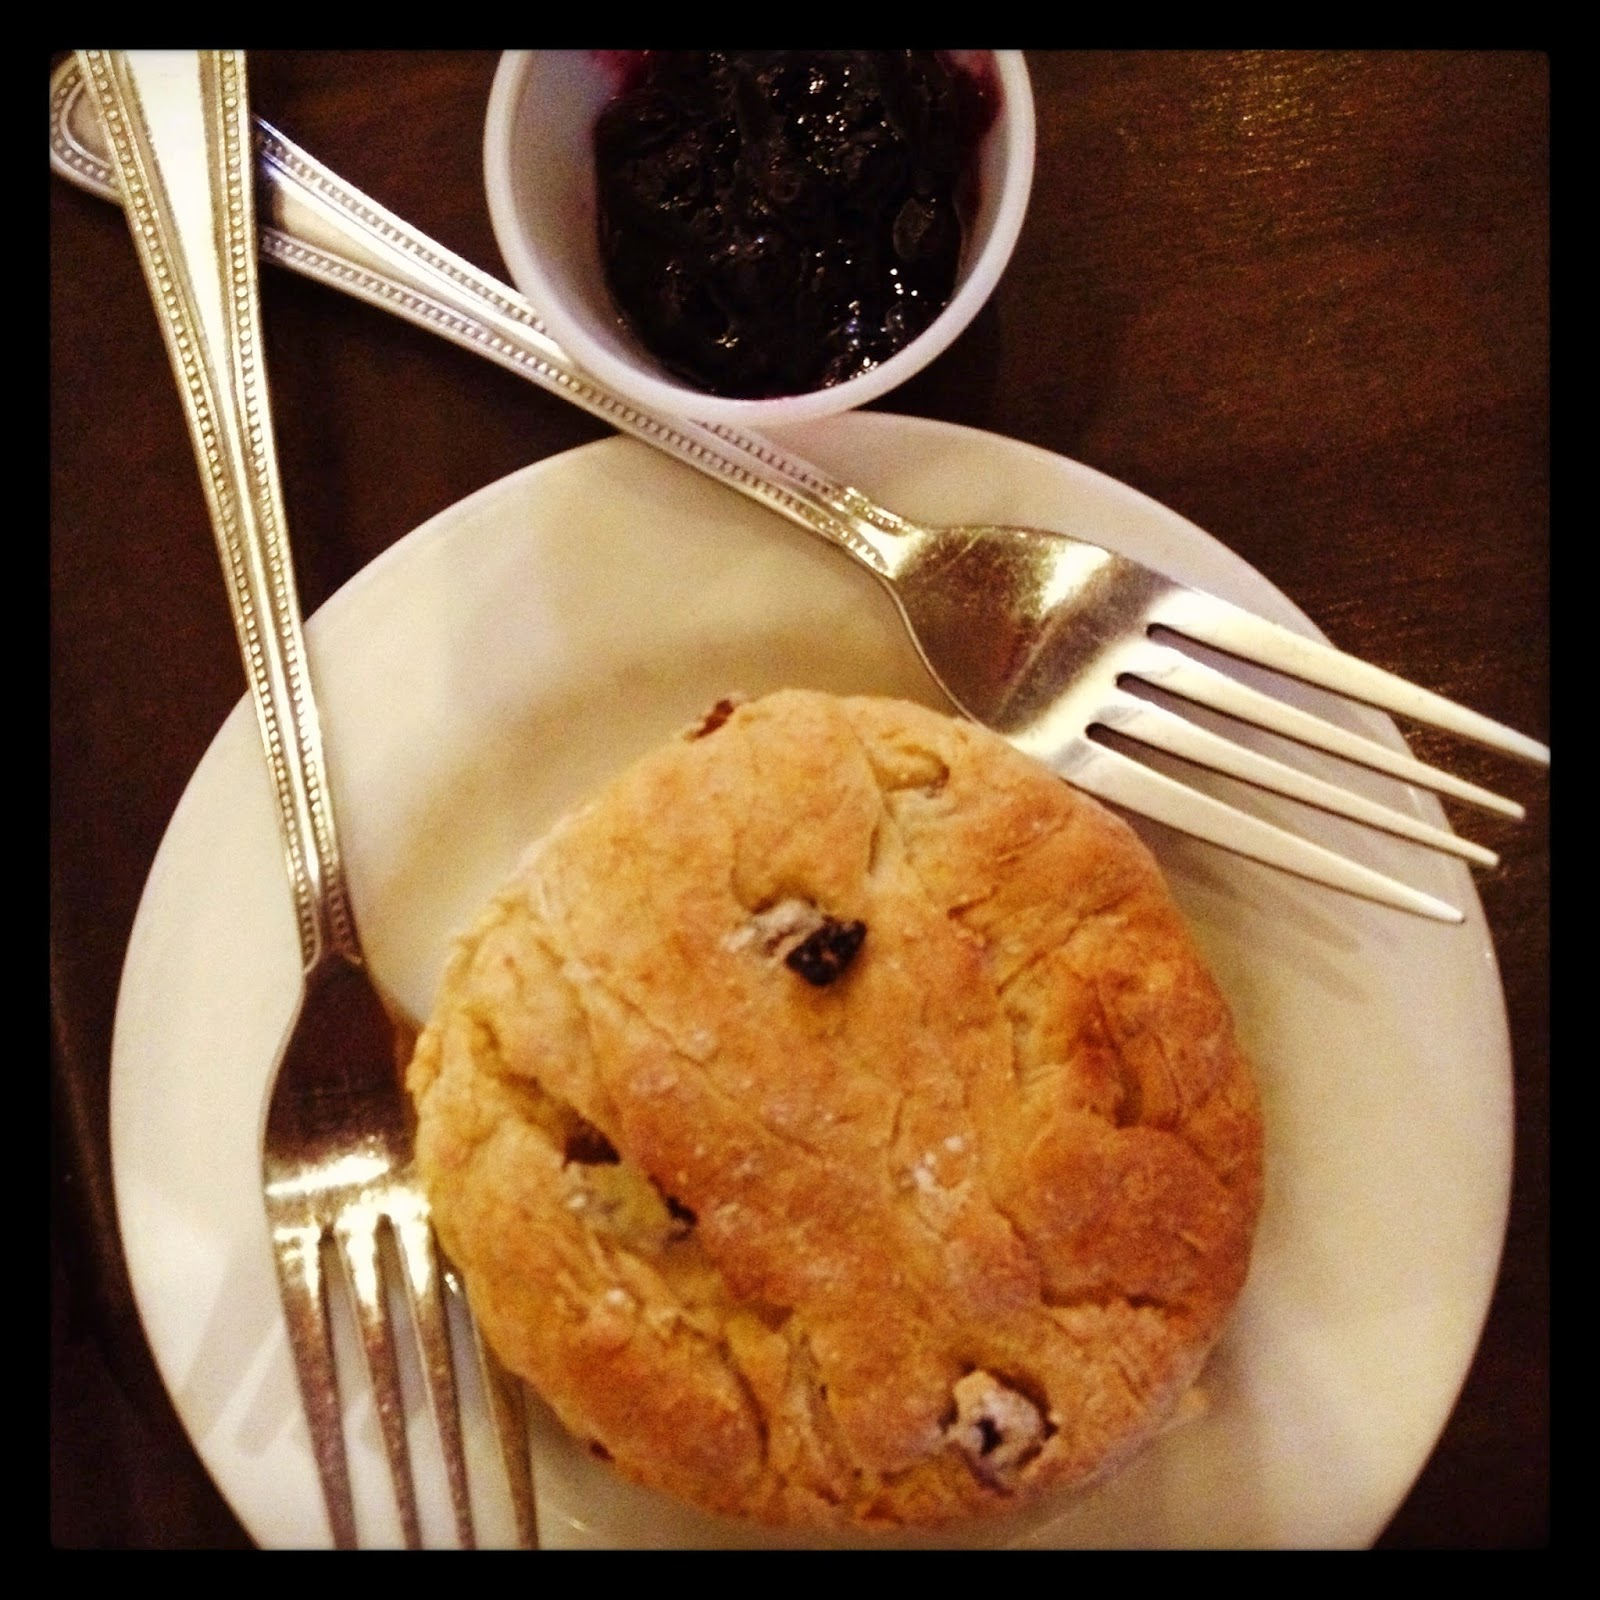 Vegan Scone and Jam Cornucopia Dublin, Ireland